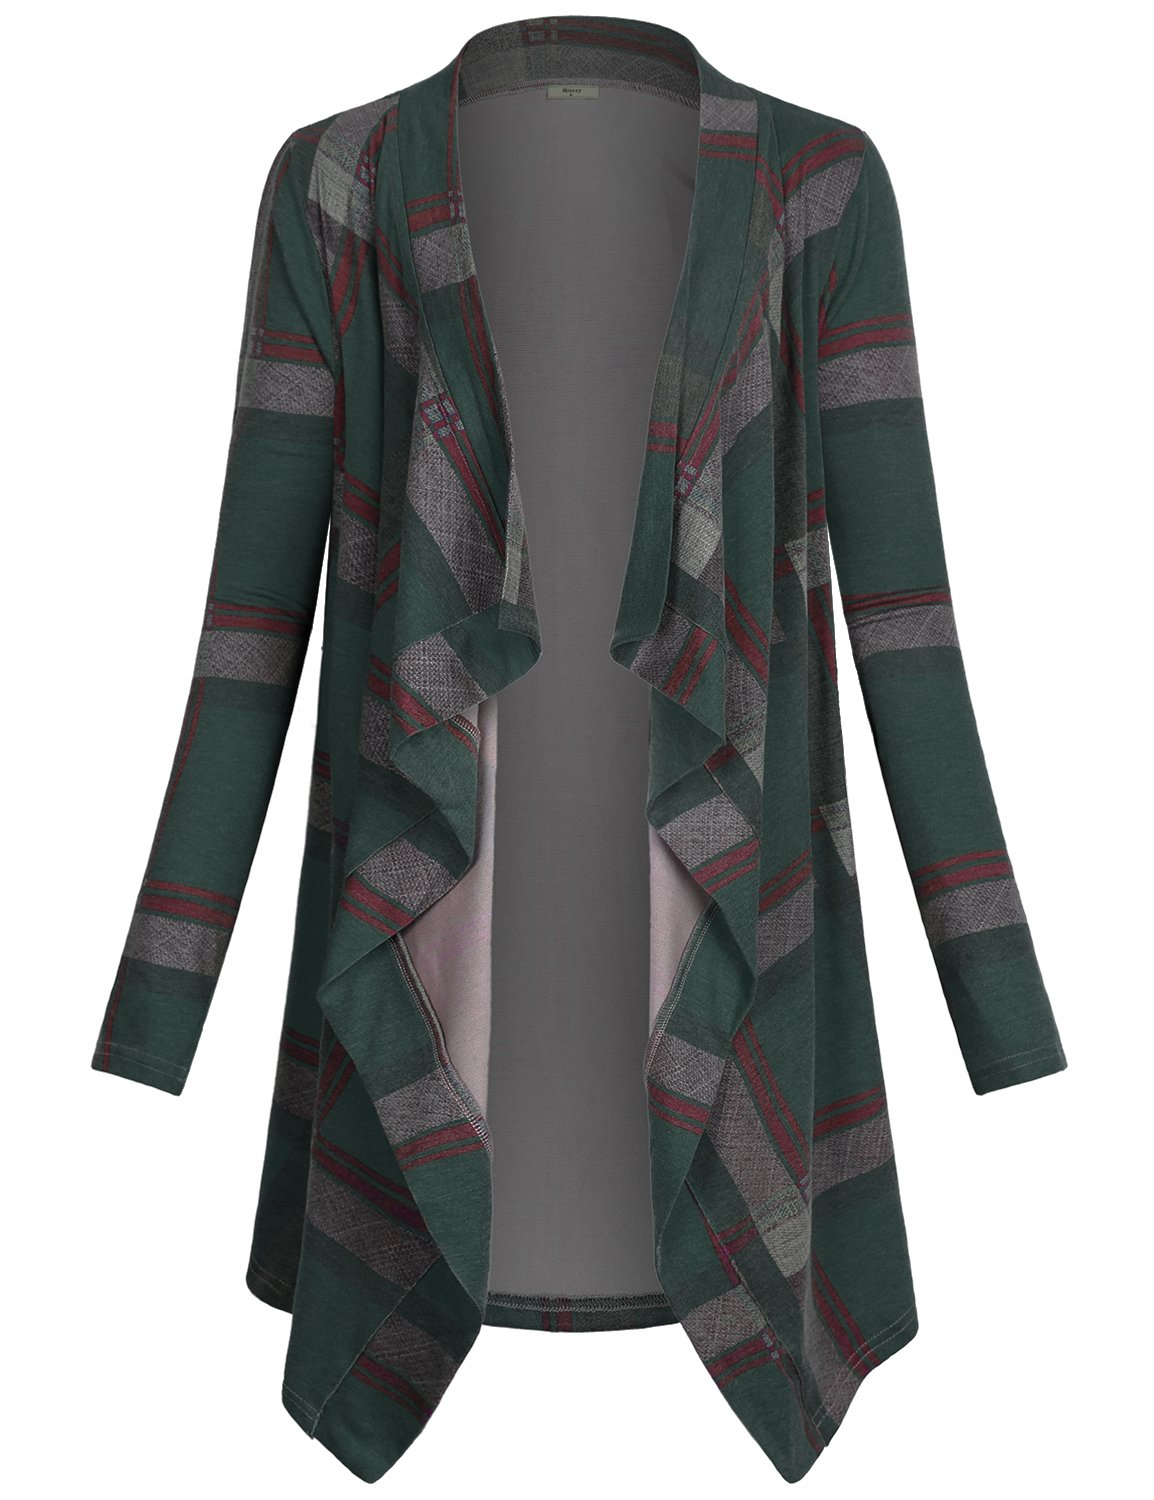 Miusey Open Front Cardigan Women's Fashion Long Sleeve Geometric Casual Plaid Print Drape Open Front Knit Wrap Loose Fitting Style Fashion Knit Clothes Sweater Coat Green Medium